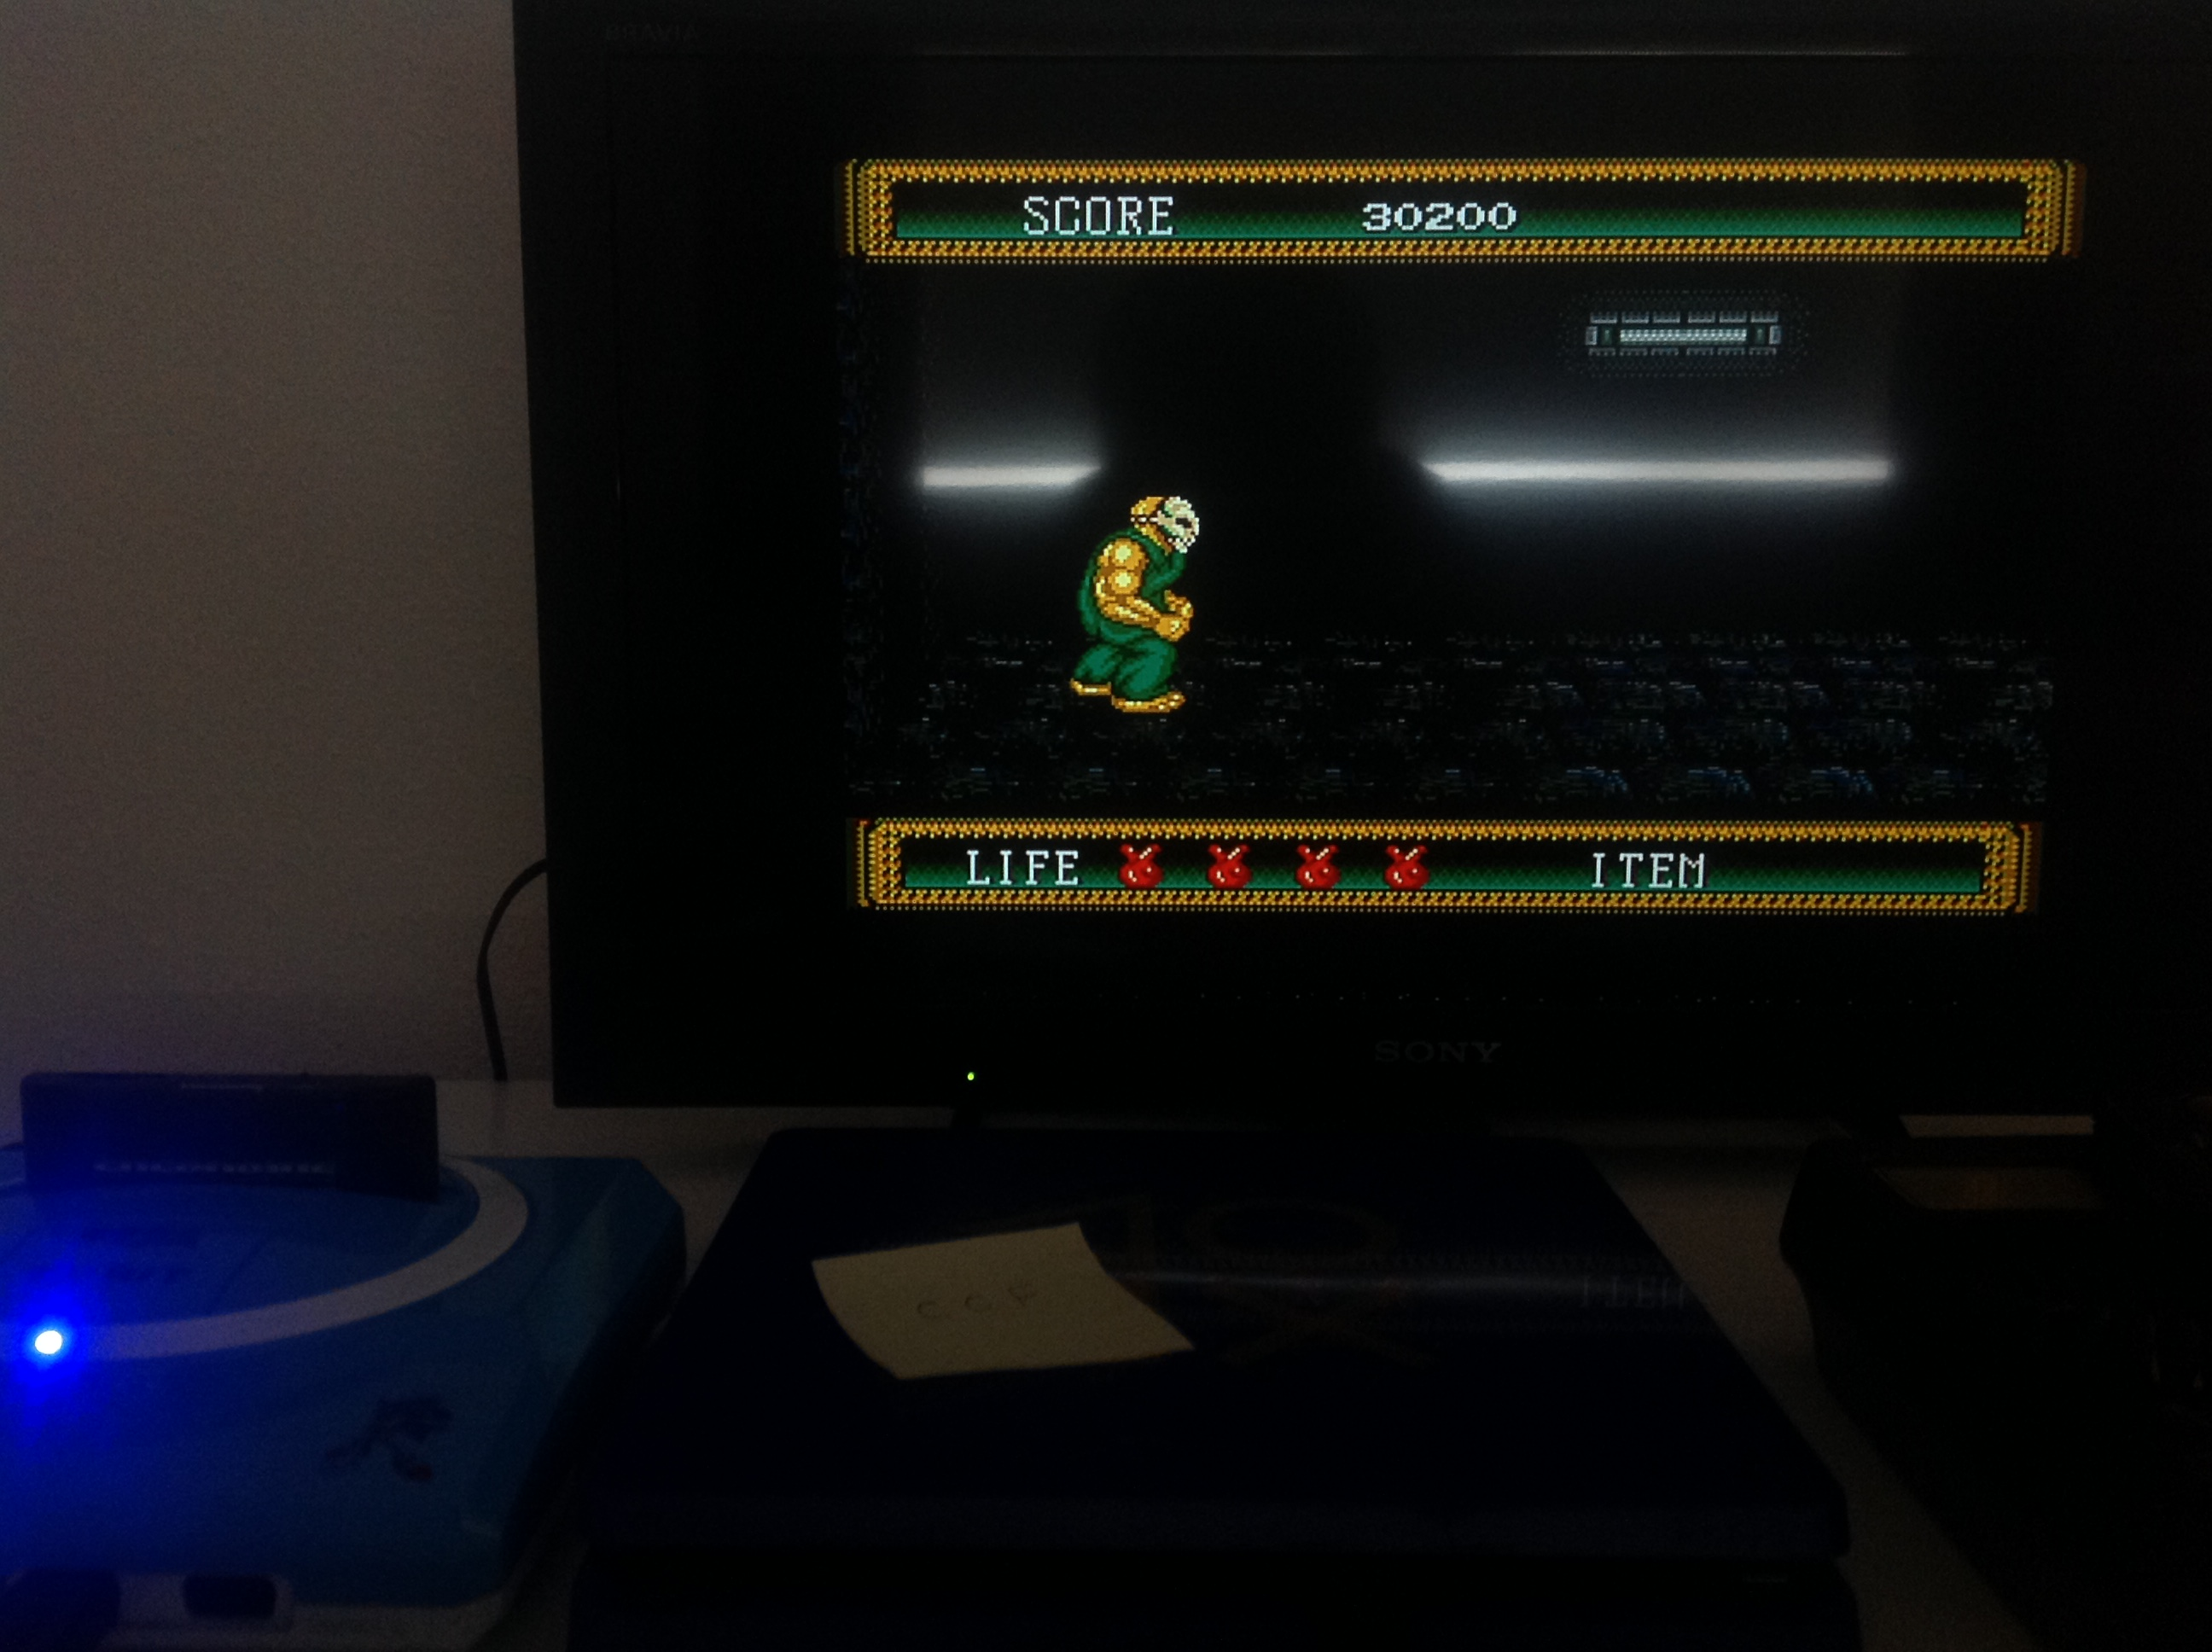 CoCoForest: Splatterhouse 2 (Sega Genesis / MegaDrive) 30,200 points on 2018-07-21 05:38:58